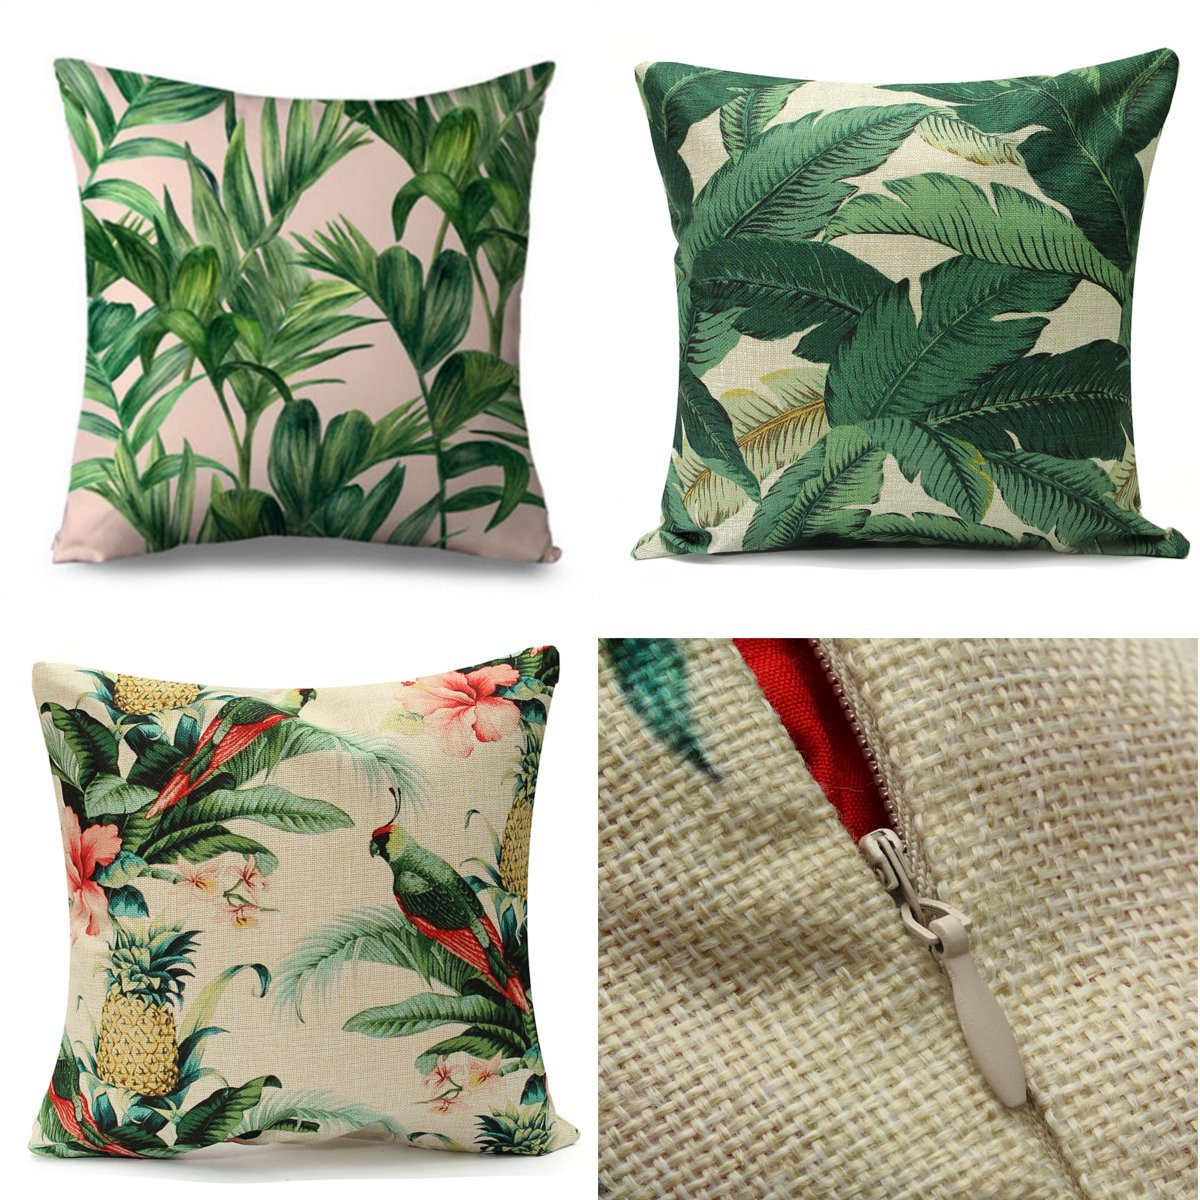 Great Meigar Tropical Banana Green Leaves Couch Cushion Pillow Covers 18x18  Square Zippered Cotton Linen Standard Decorative